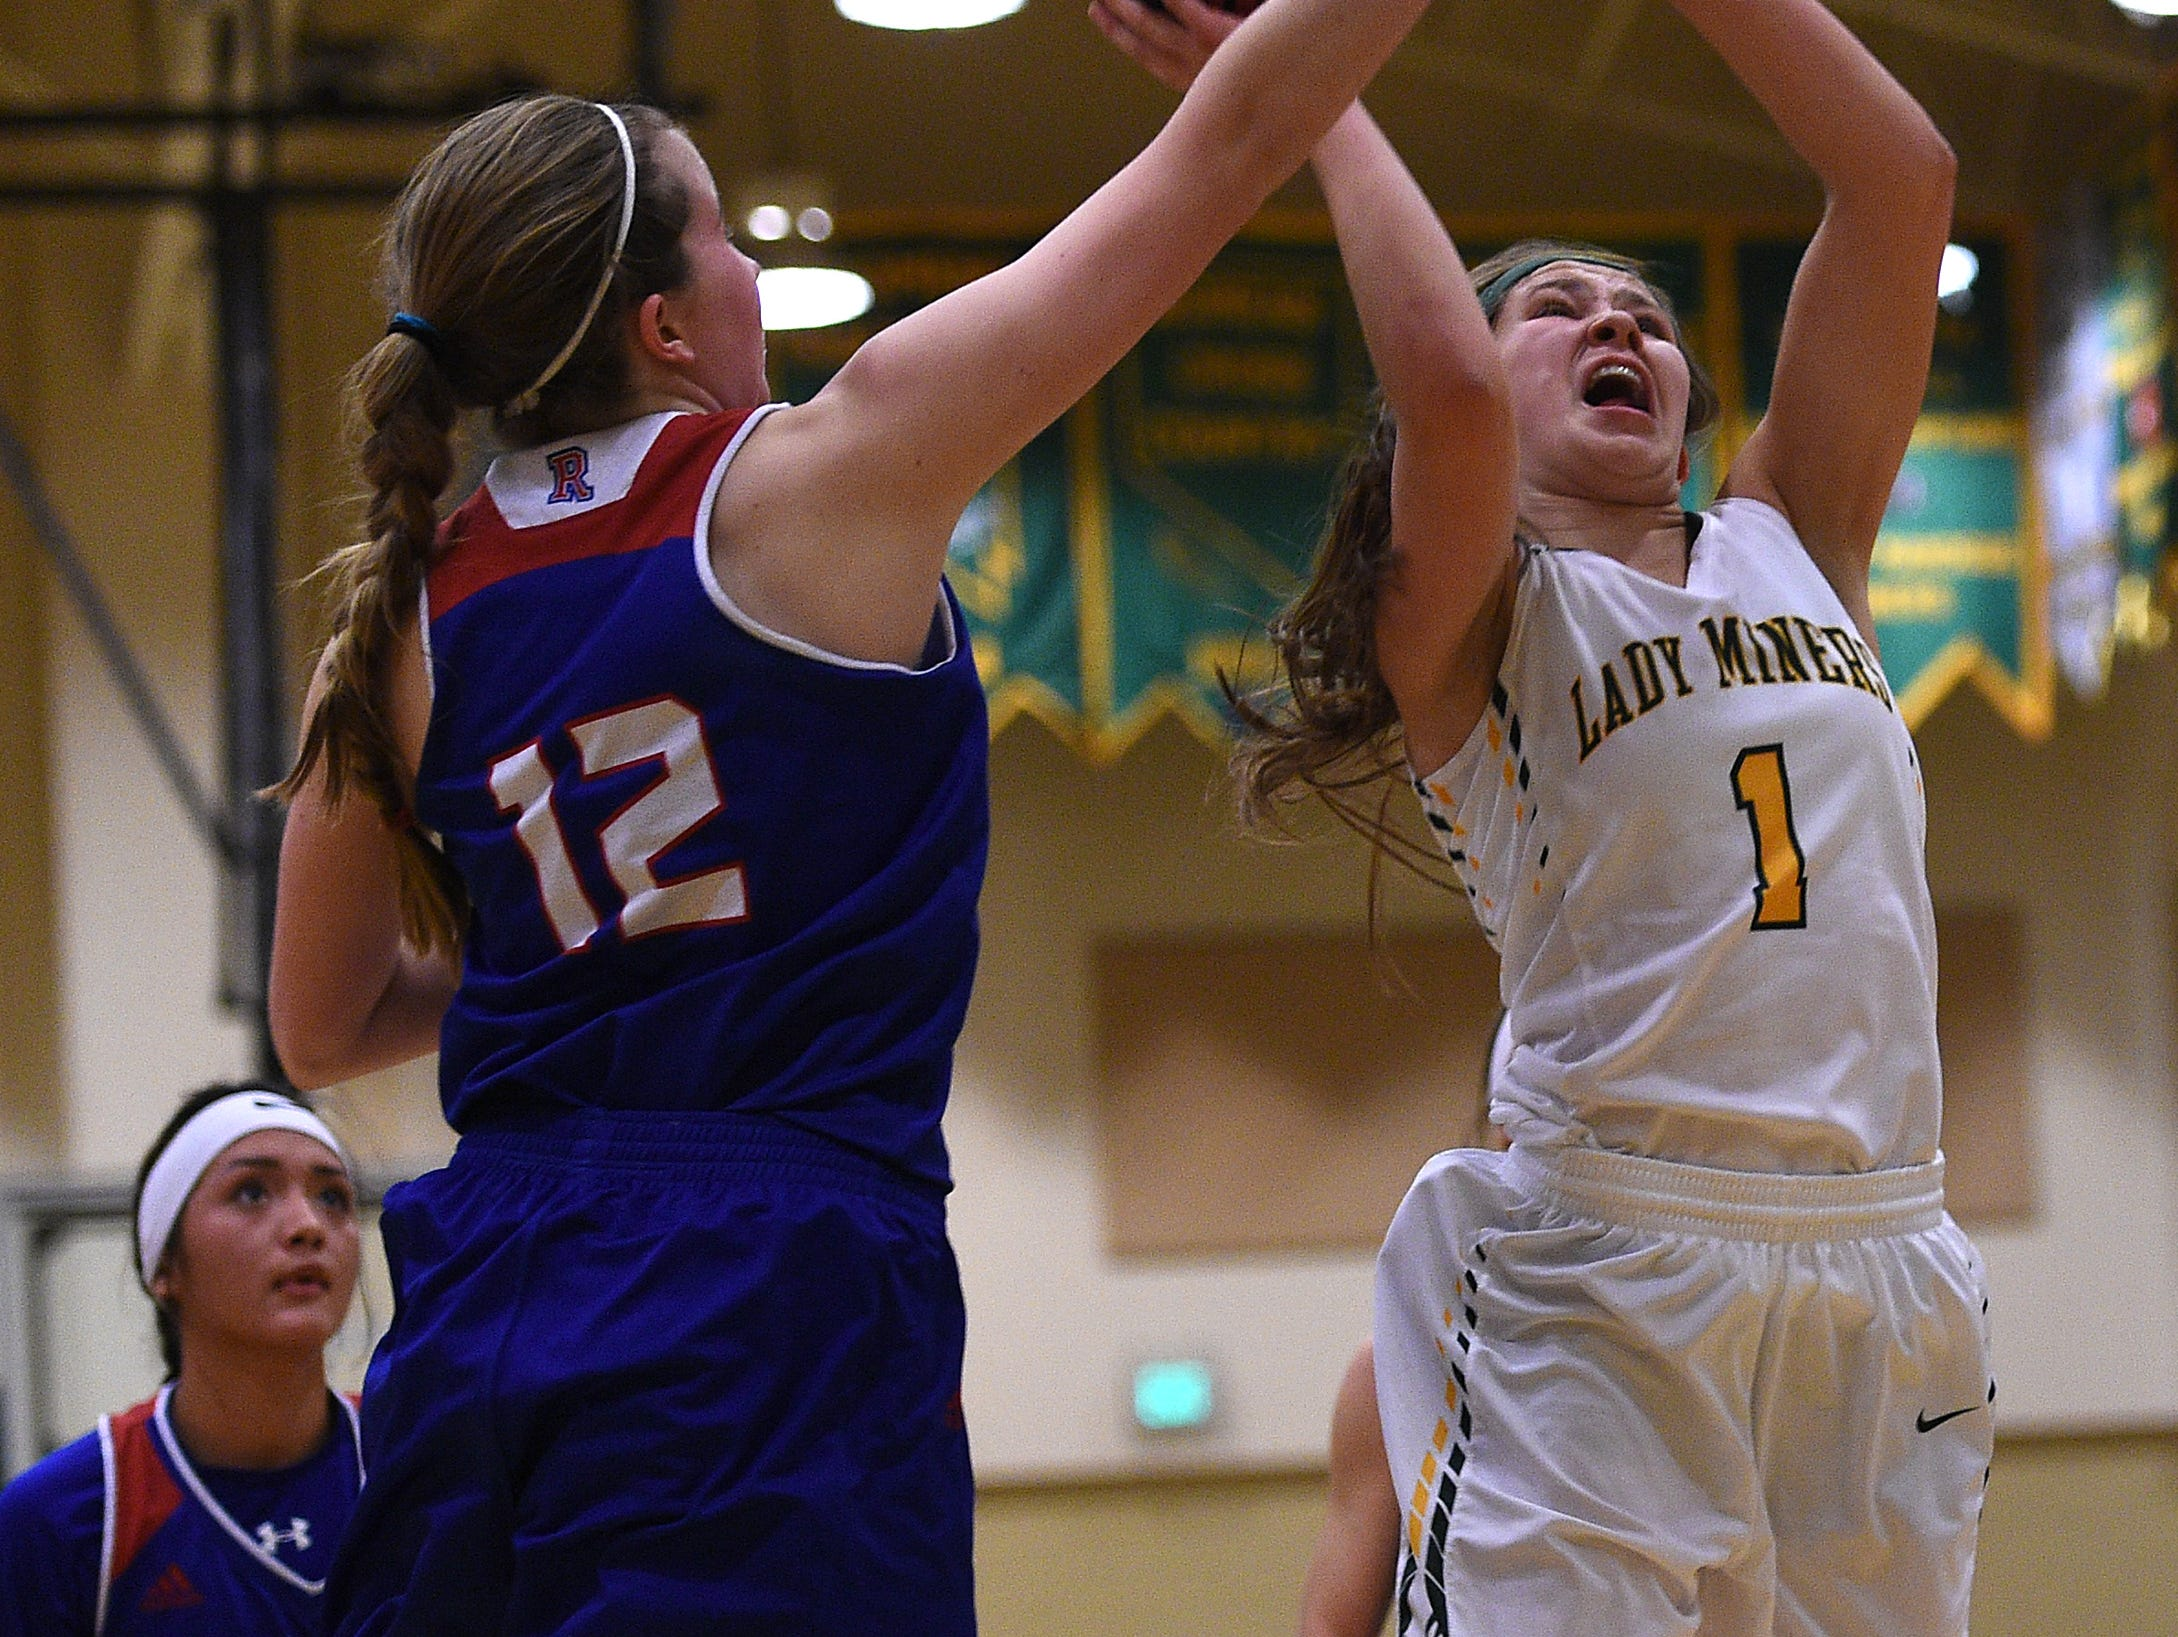 Bishop Manogue's Katie Turner (1) drives against Reno's Mia Wilmot (12) during their basketball game at Manogue on Friday